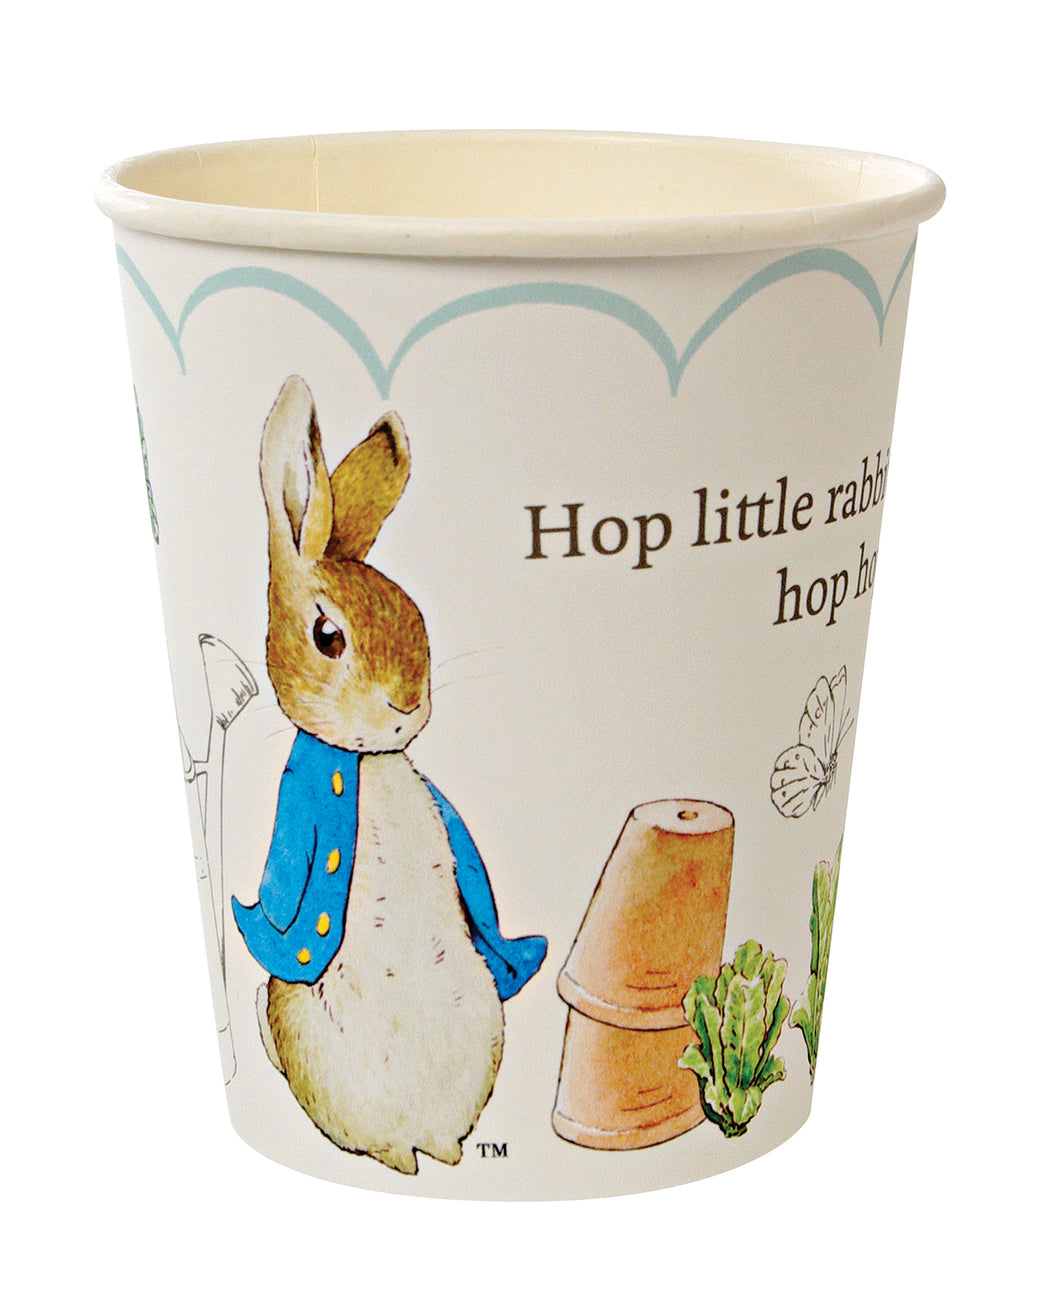 Though Peter Rabbit is now well over 100 years old, Beatrix Potter's charming creation is as beloved as ever, making him and his friends the perfect special guests for any celebration. That's why they feature on these sweet party cups. Available in packs of 12 and suitable for hot or cold drinks, these cups are decorated with the classic illustrations of Beatrix Potter, together with the never-to-be-forgotten line,